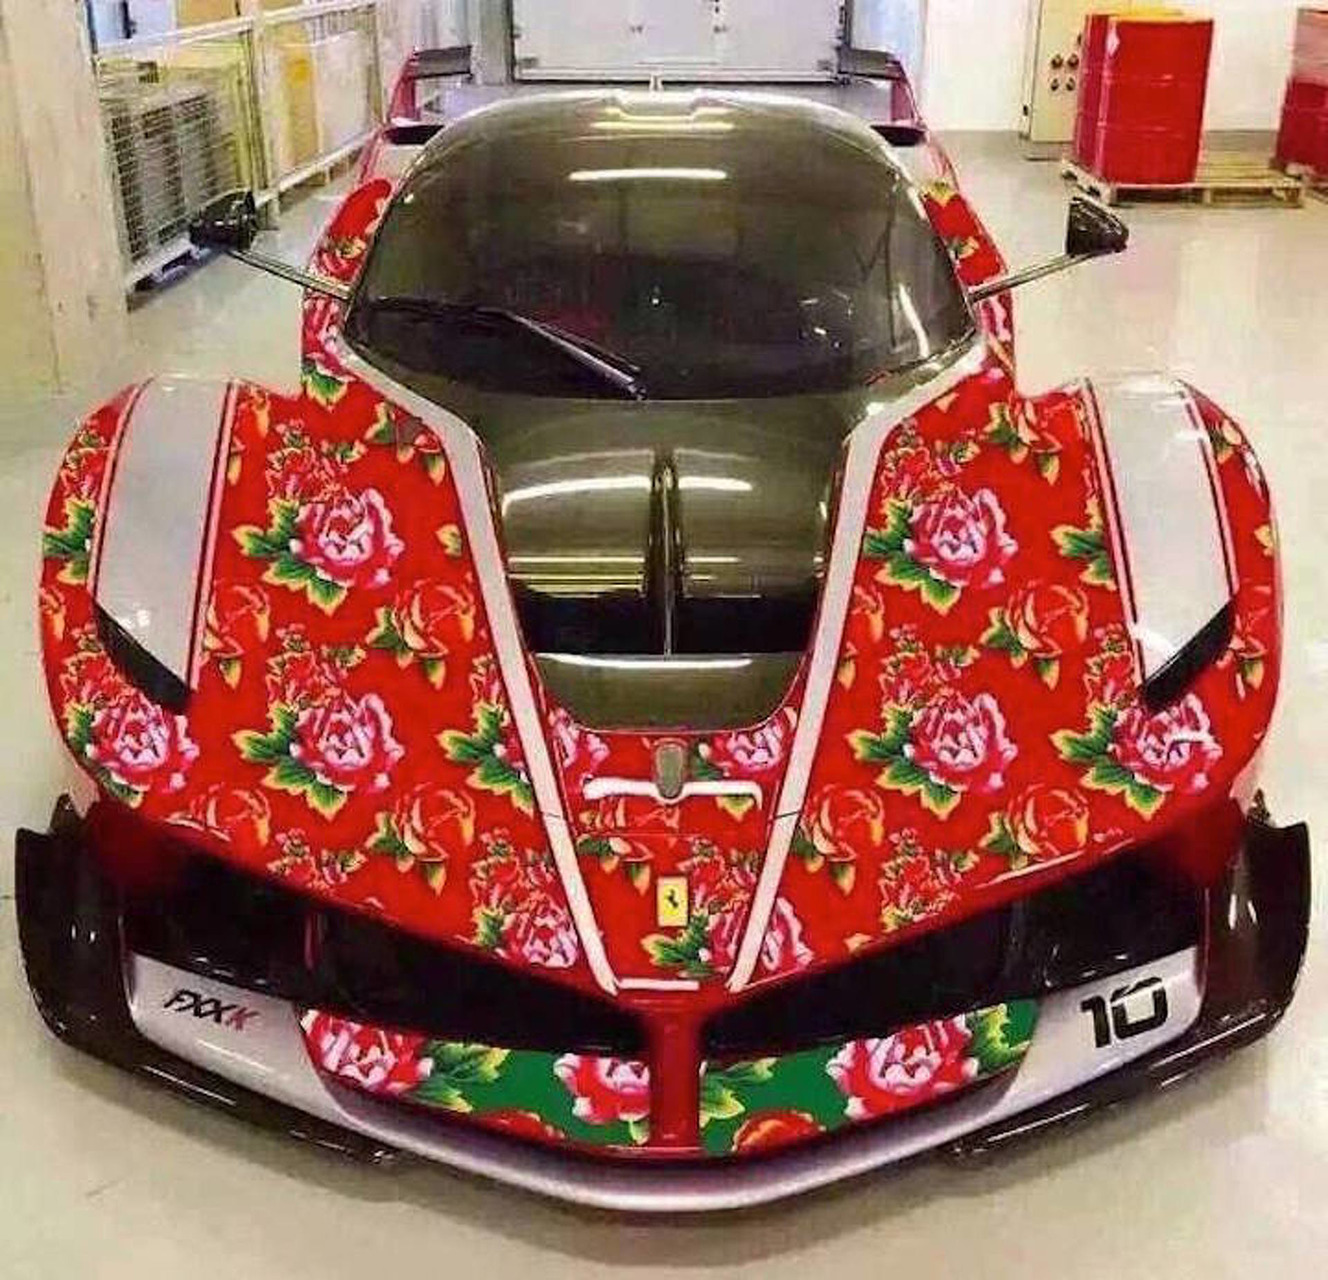 This Rose-Wrapped Ferrari FXX K is Fabulously Frightening